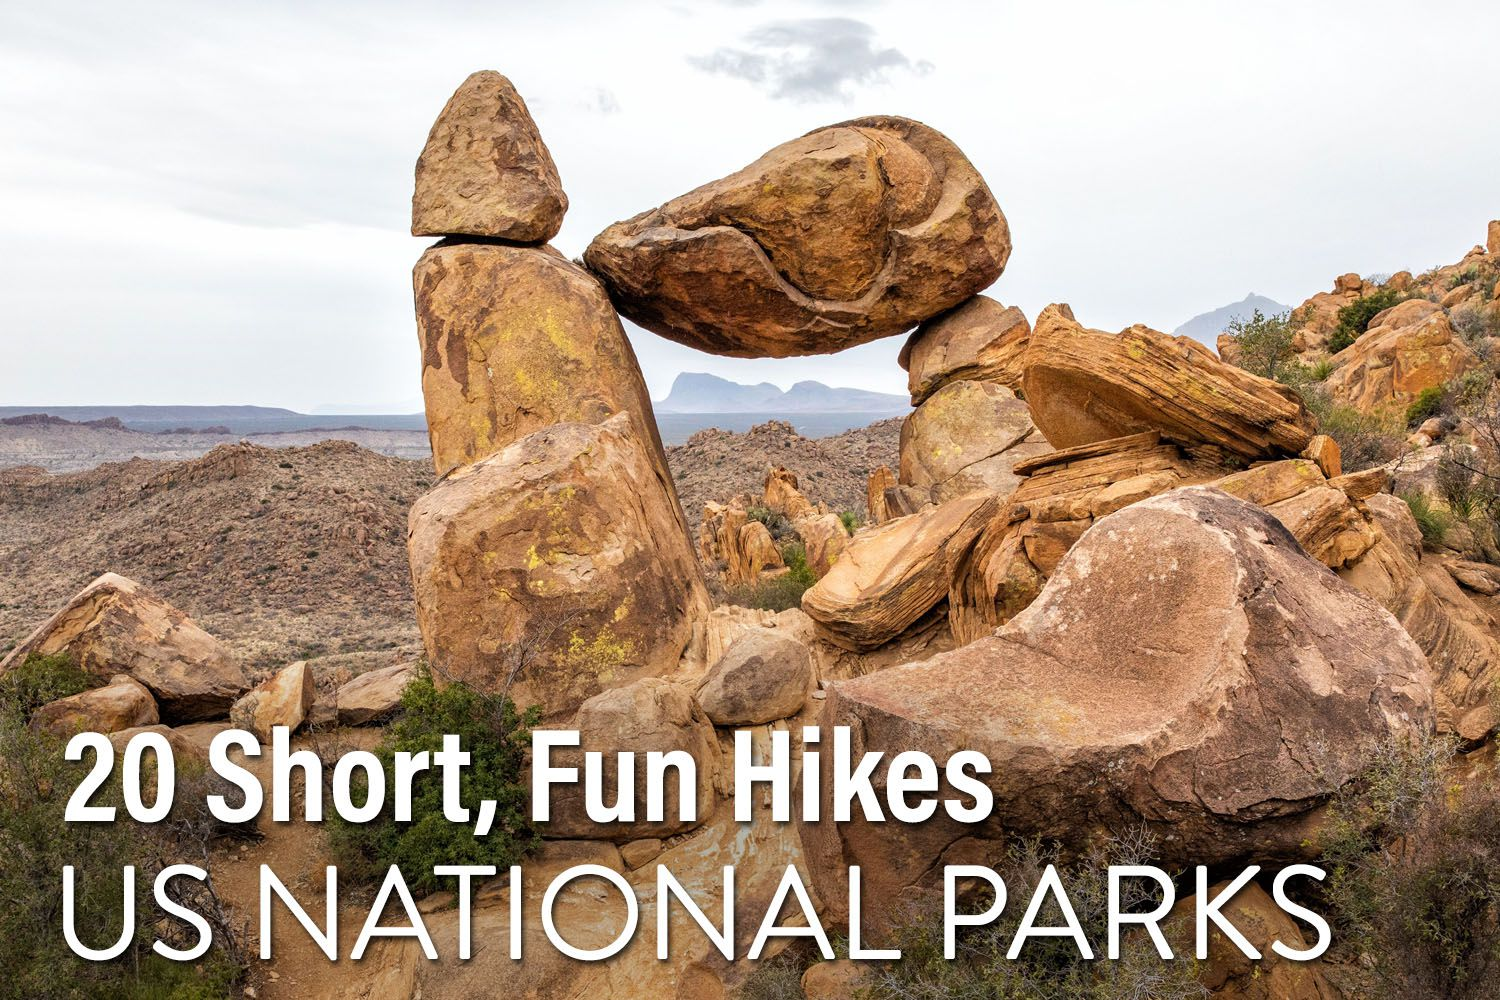 Day Hikes in National Parks